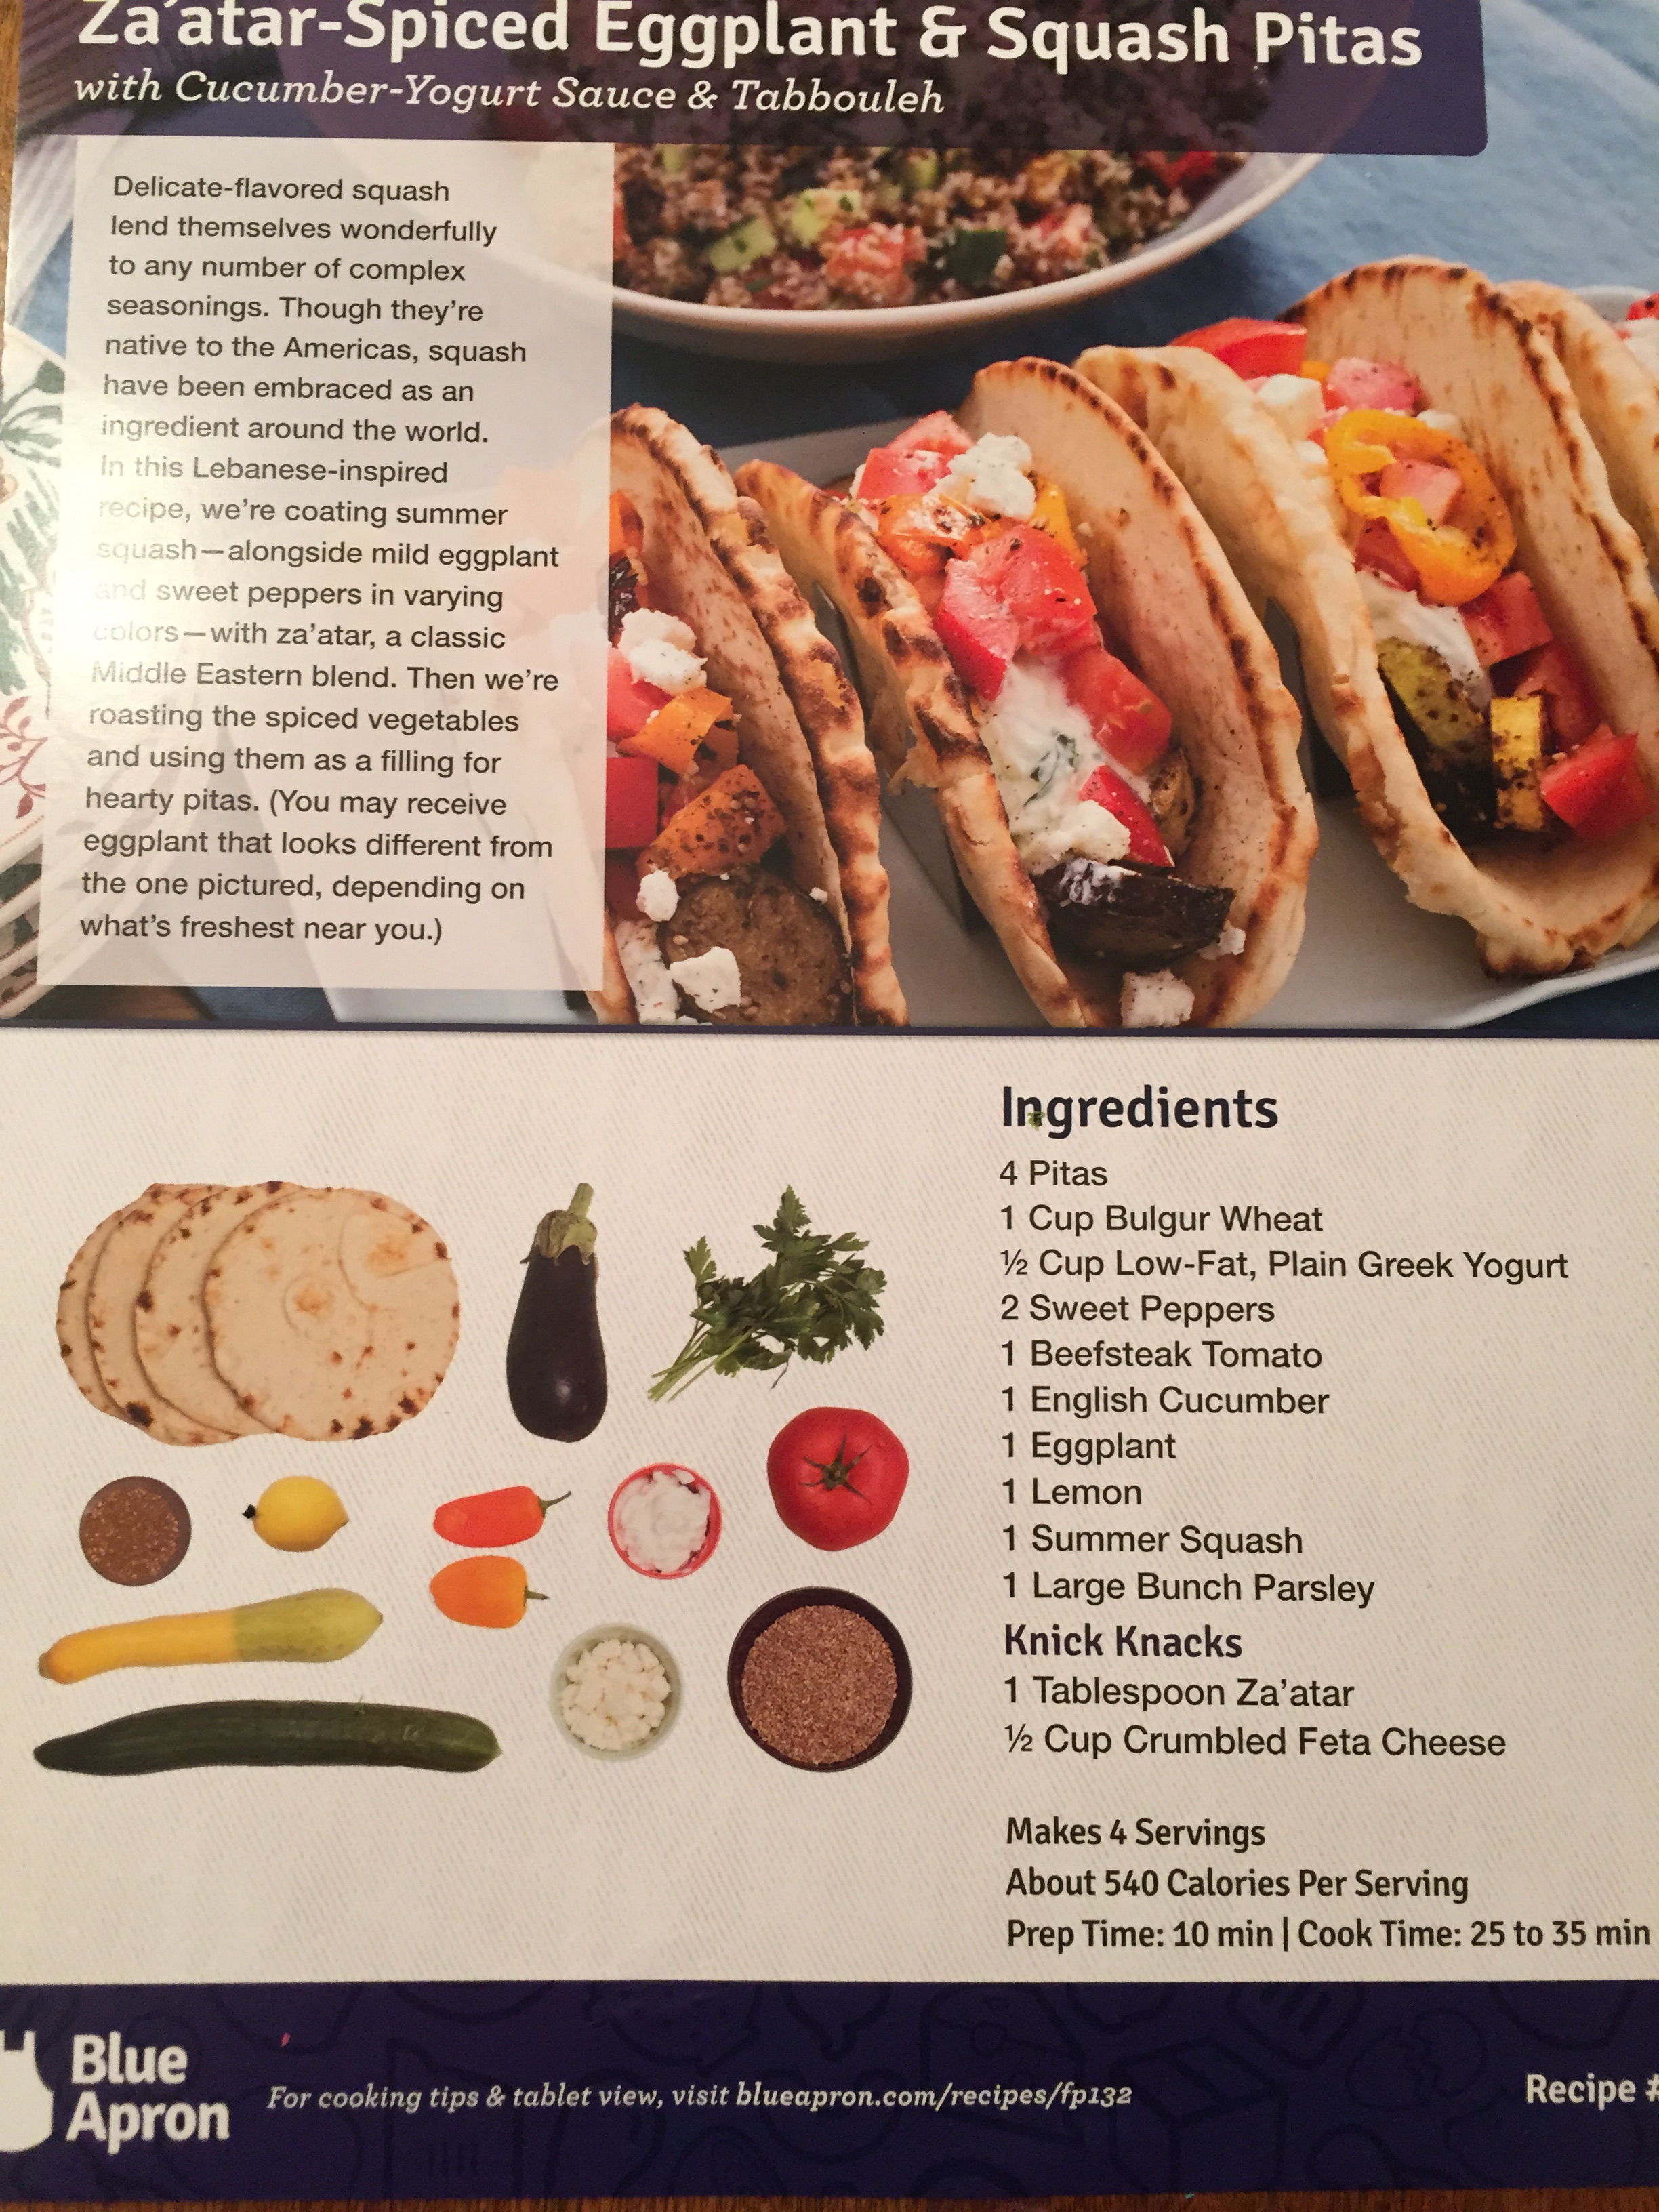 Blue apron yogurt sauce -  Eggplant And Tomato Which I Went Off Recipe Here And Roasted The Beautiful Beefsteak Tomato Blue Apron Sent Because I M Still Uncomfortable Eating Raw